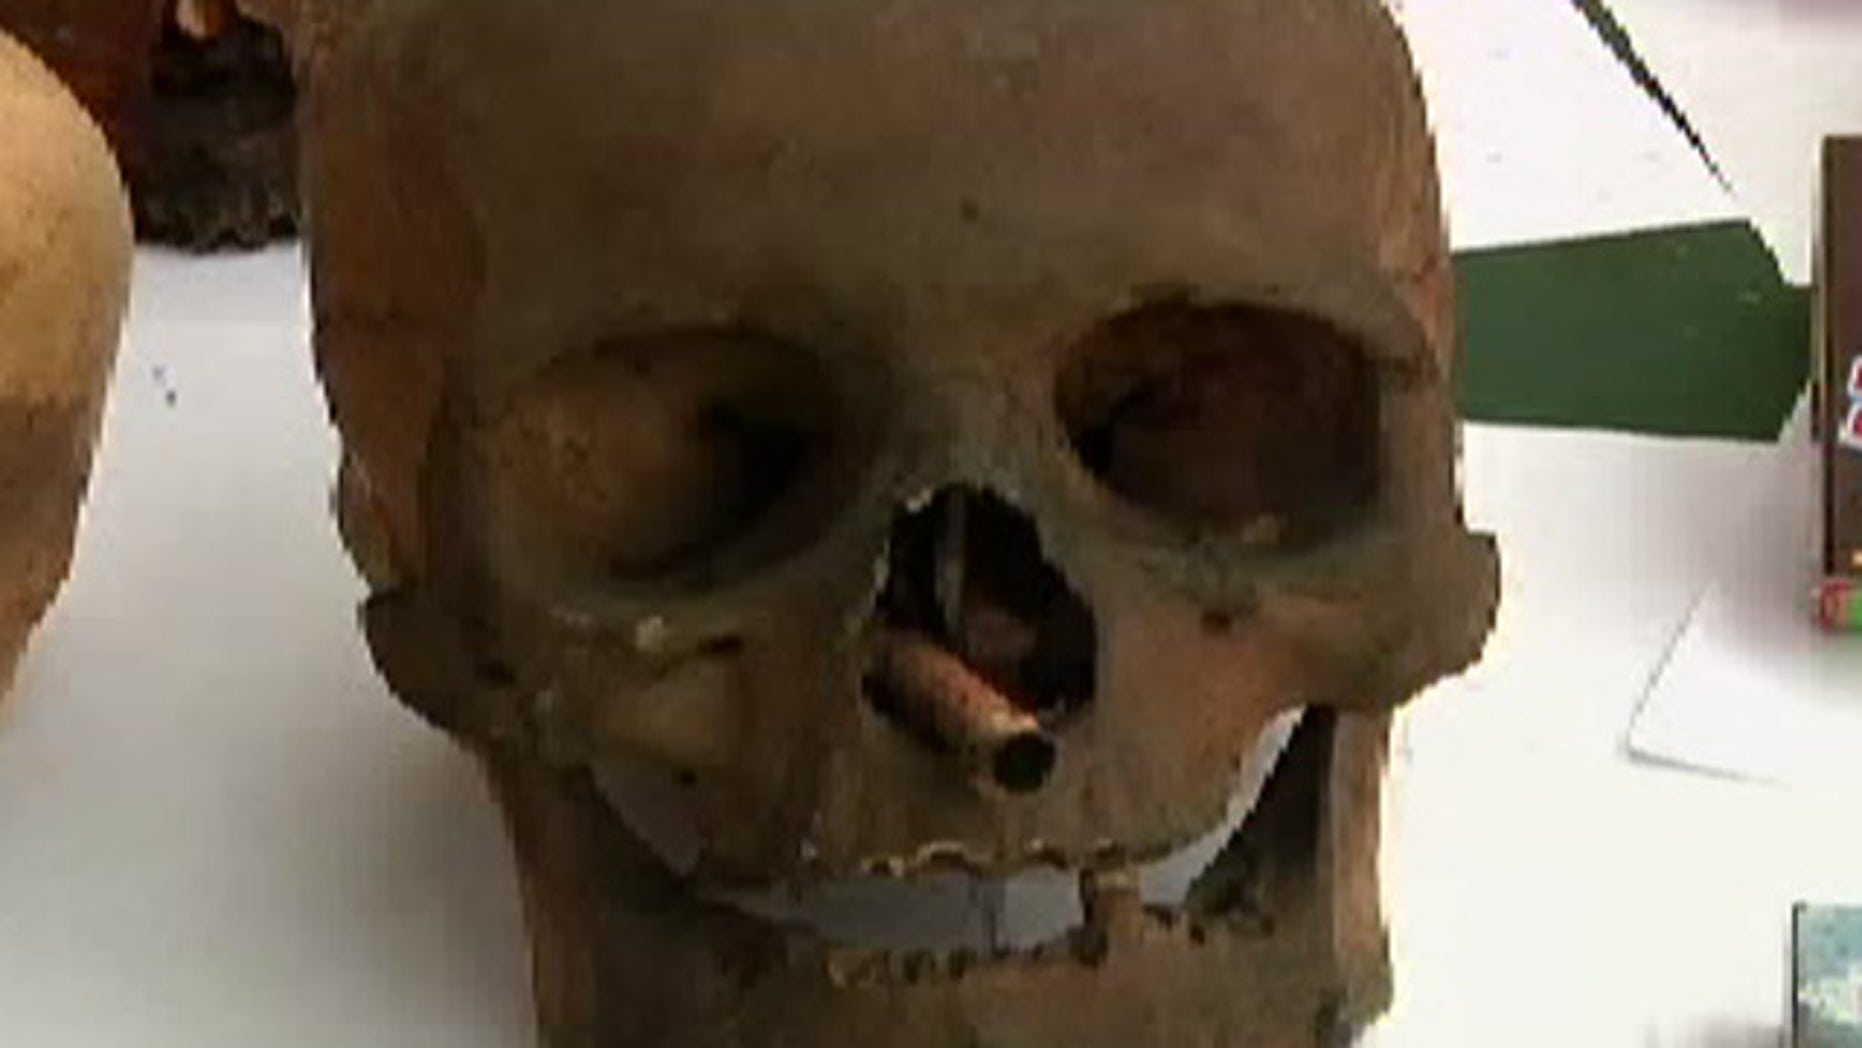 Police officers were astonished when they found a large number of human skulls inside the home of a man living in Downtown Lima, Peru.